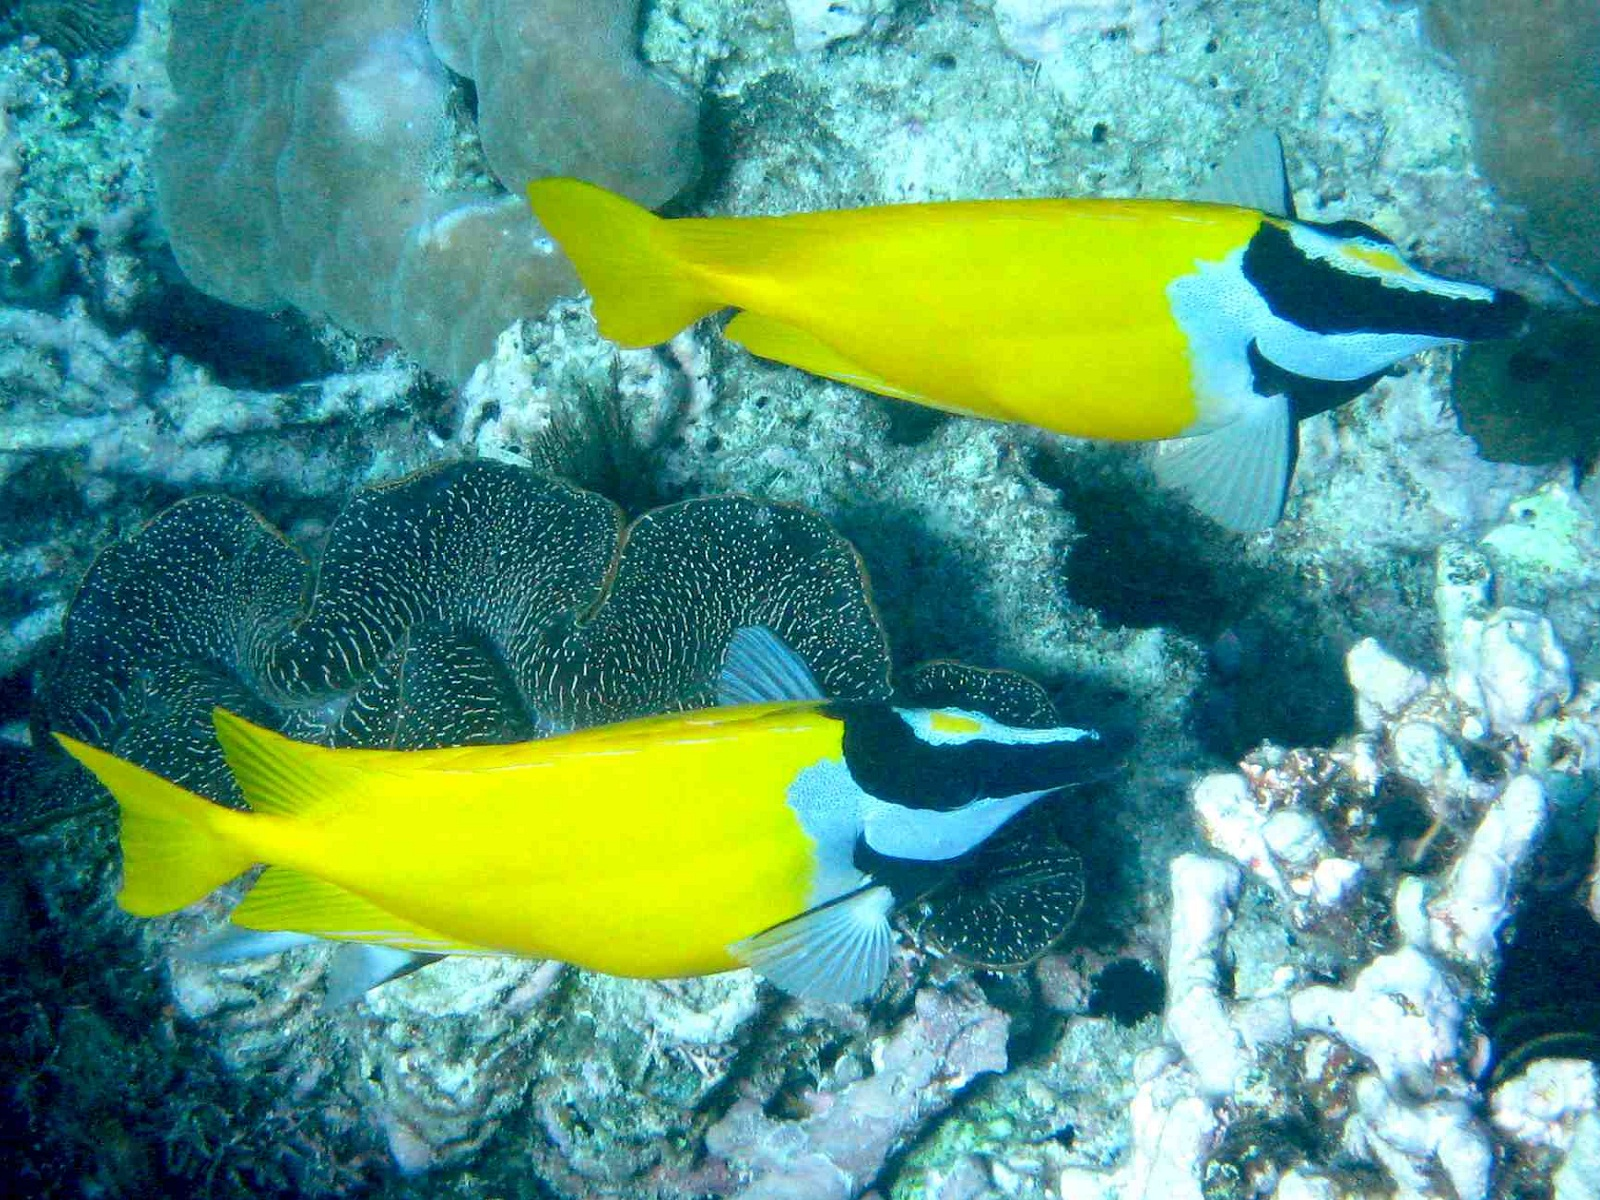 Pictures of the great barrier reef in australia images for Great barrier reef fish